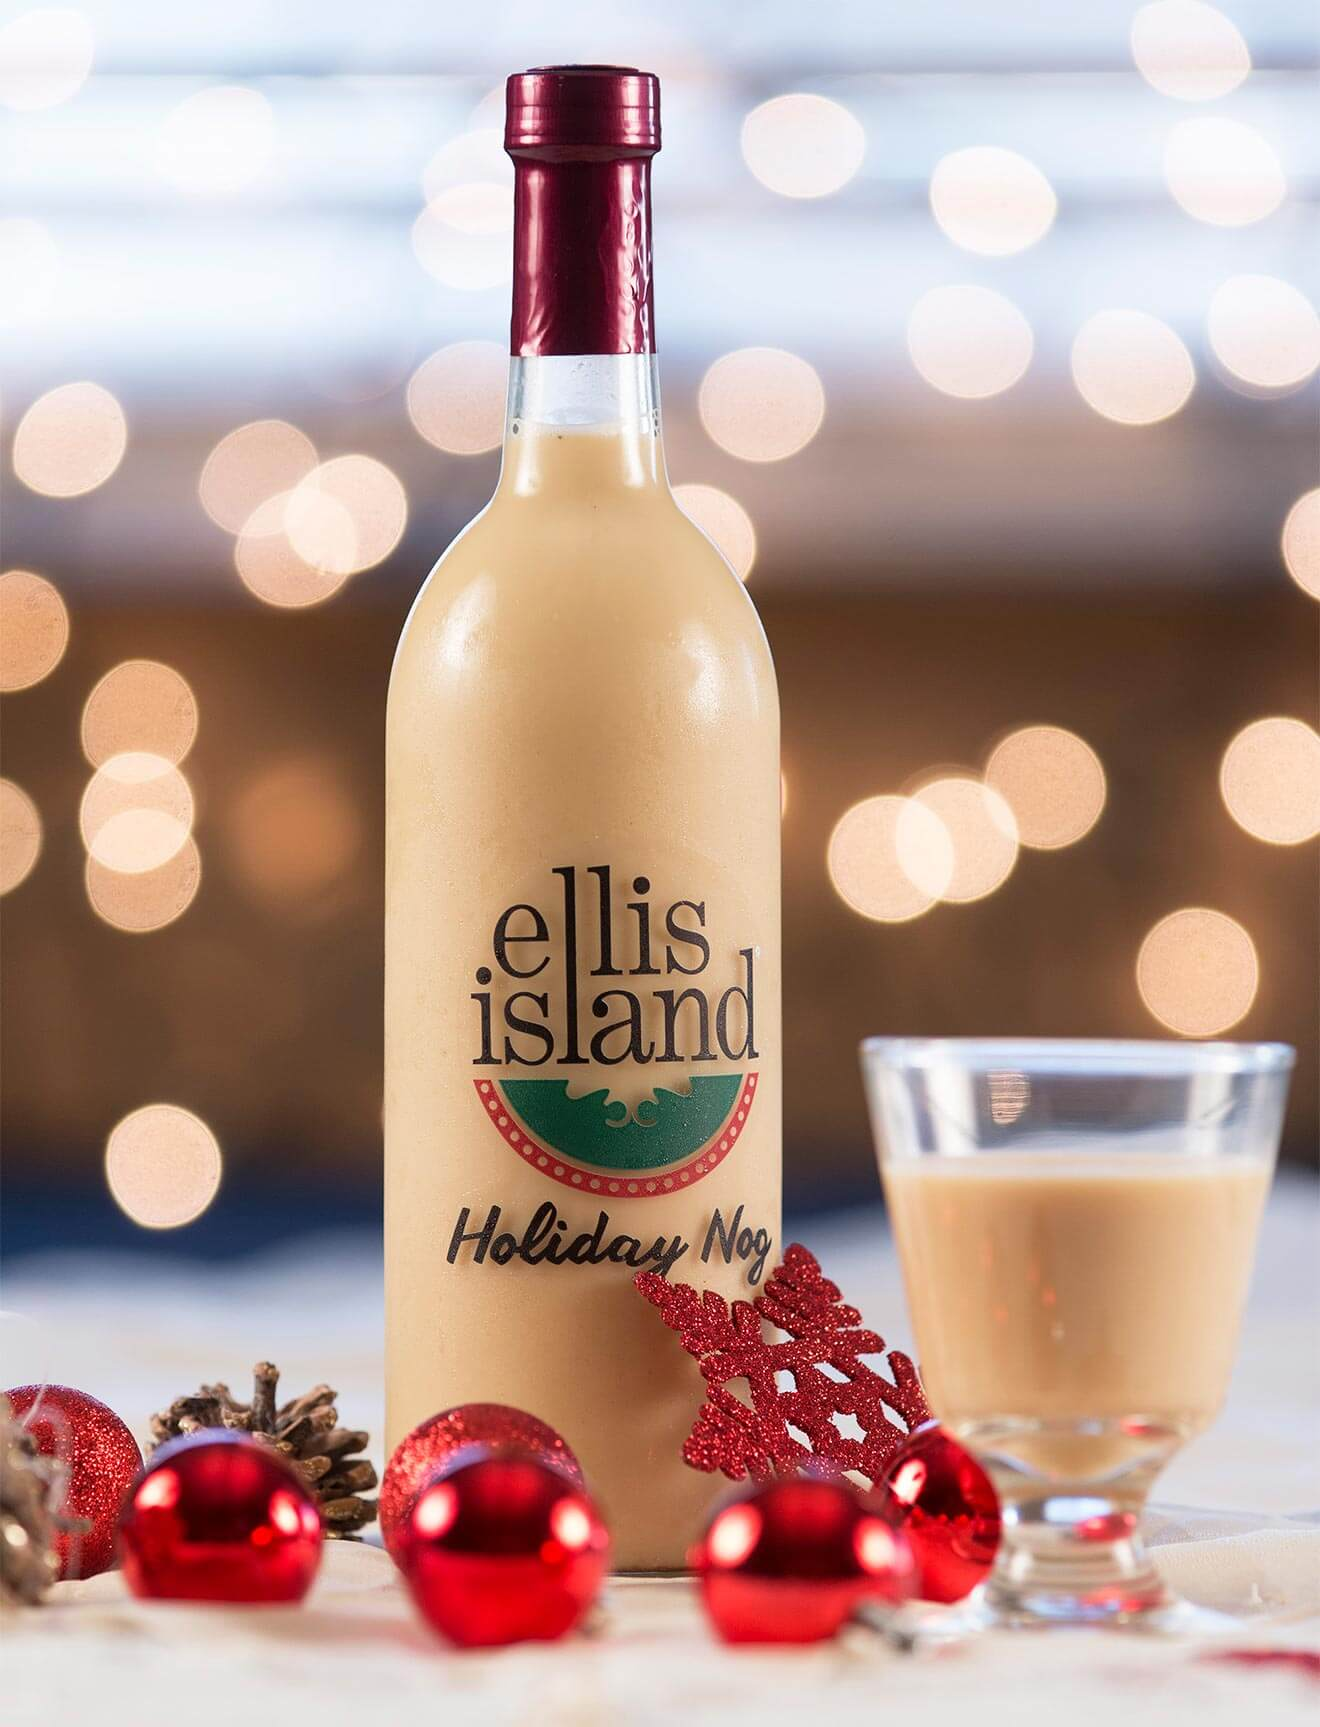 Ellis Island's Holiday Nog Now Available, holiday background, bottle and glass